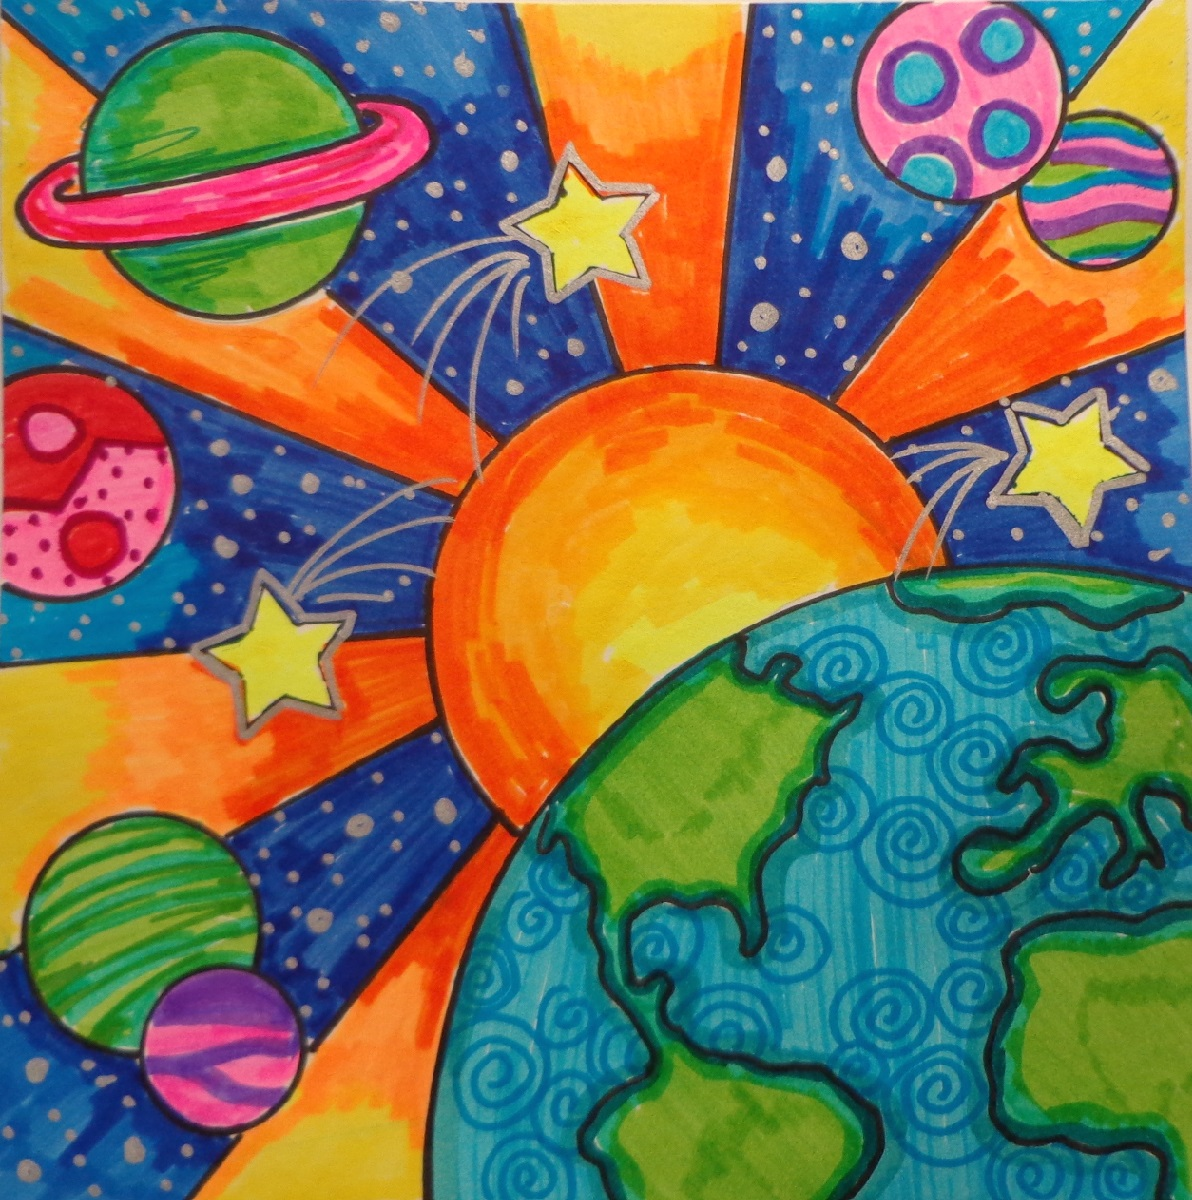 A colorful marker drawing of outer space, inspired by the artwork of Peter Max